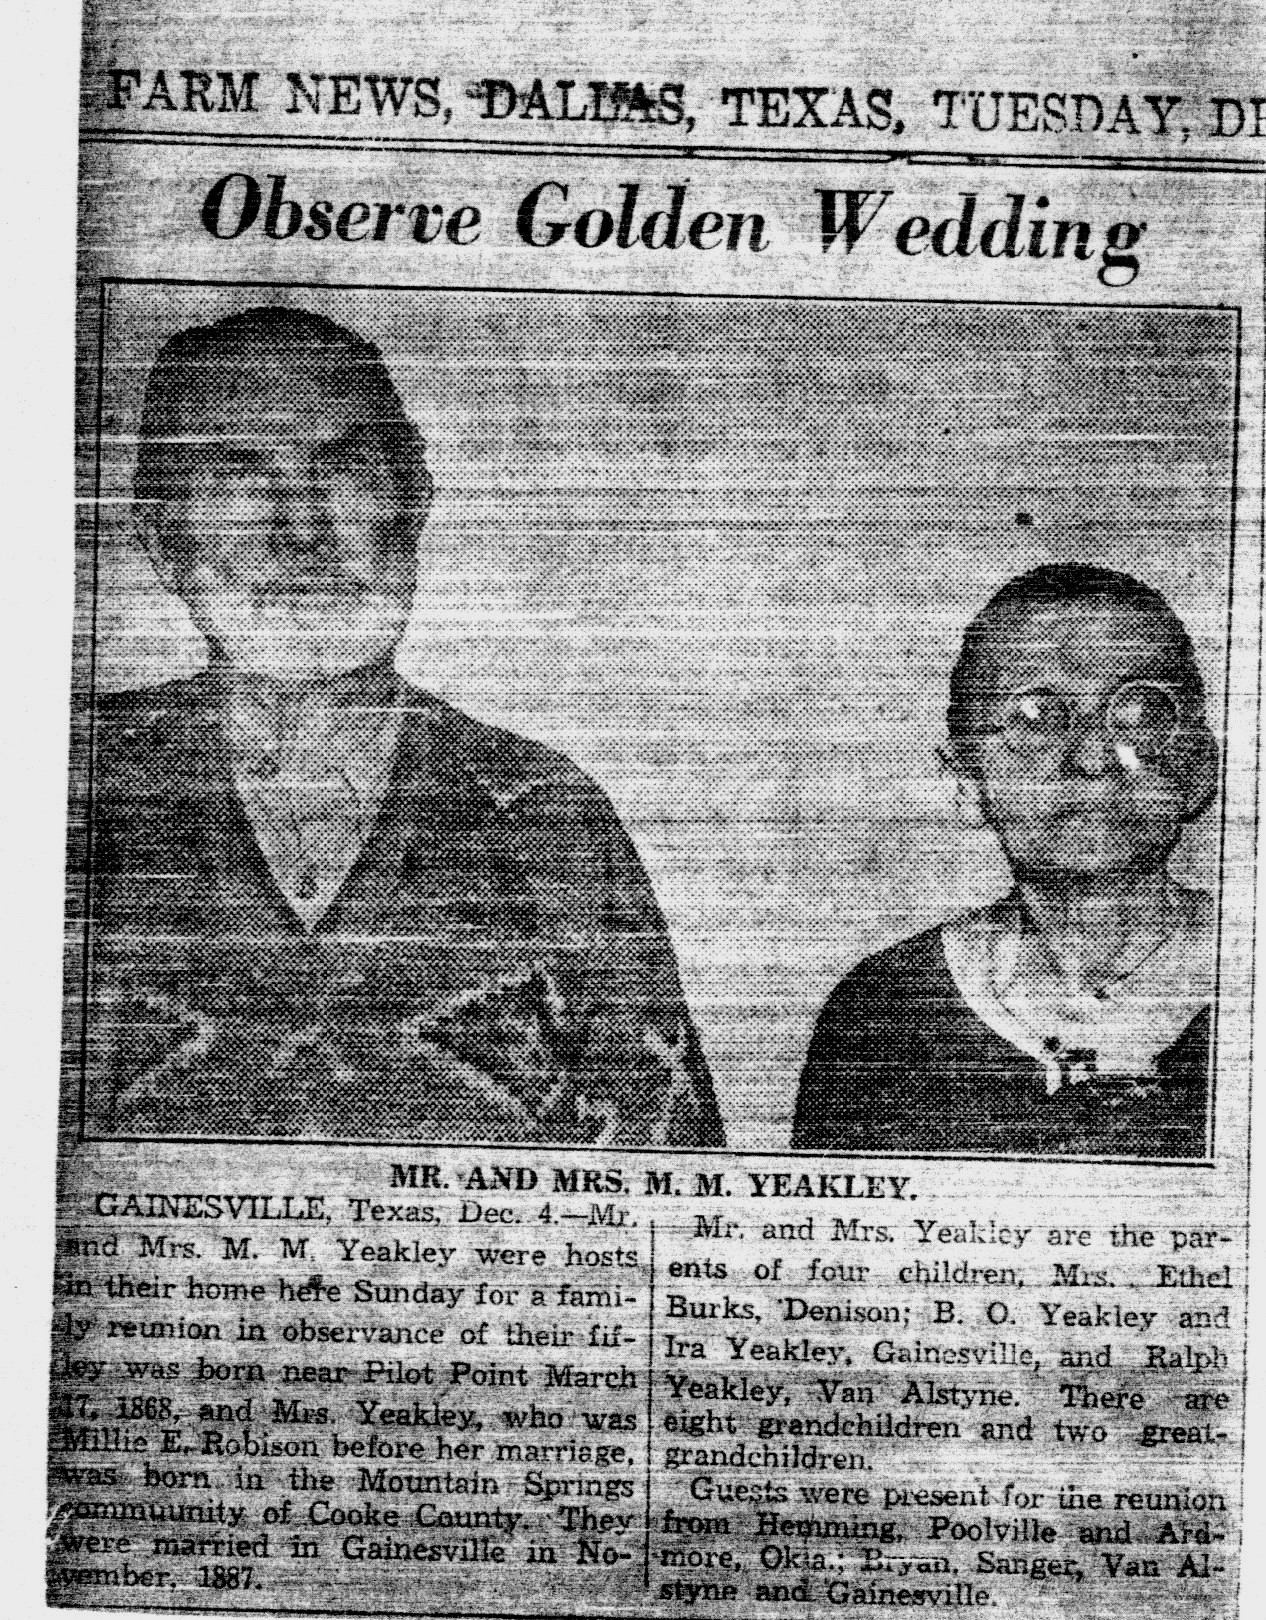 Morgan Melendez and Mille Robison golden wedding anniversary